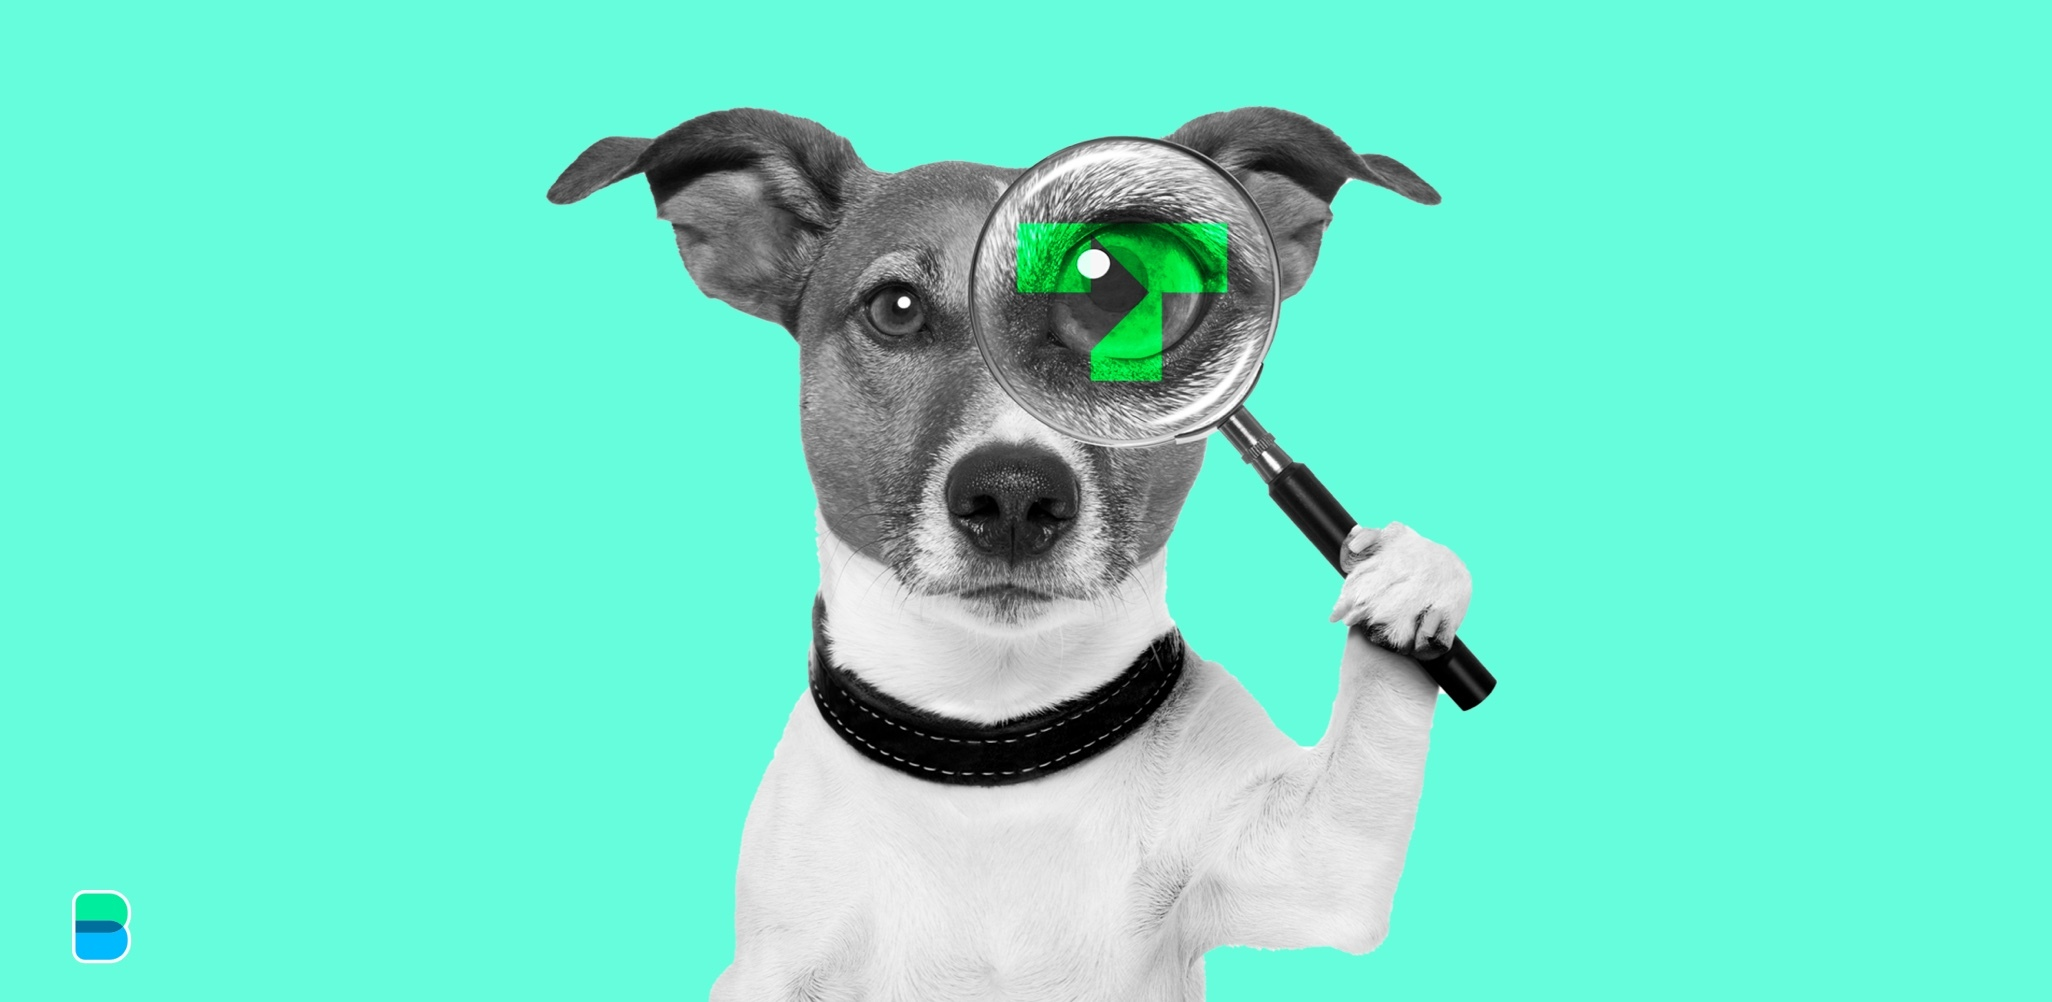 Trustly has 99 problems and the Watchdog is one